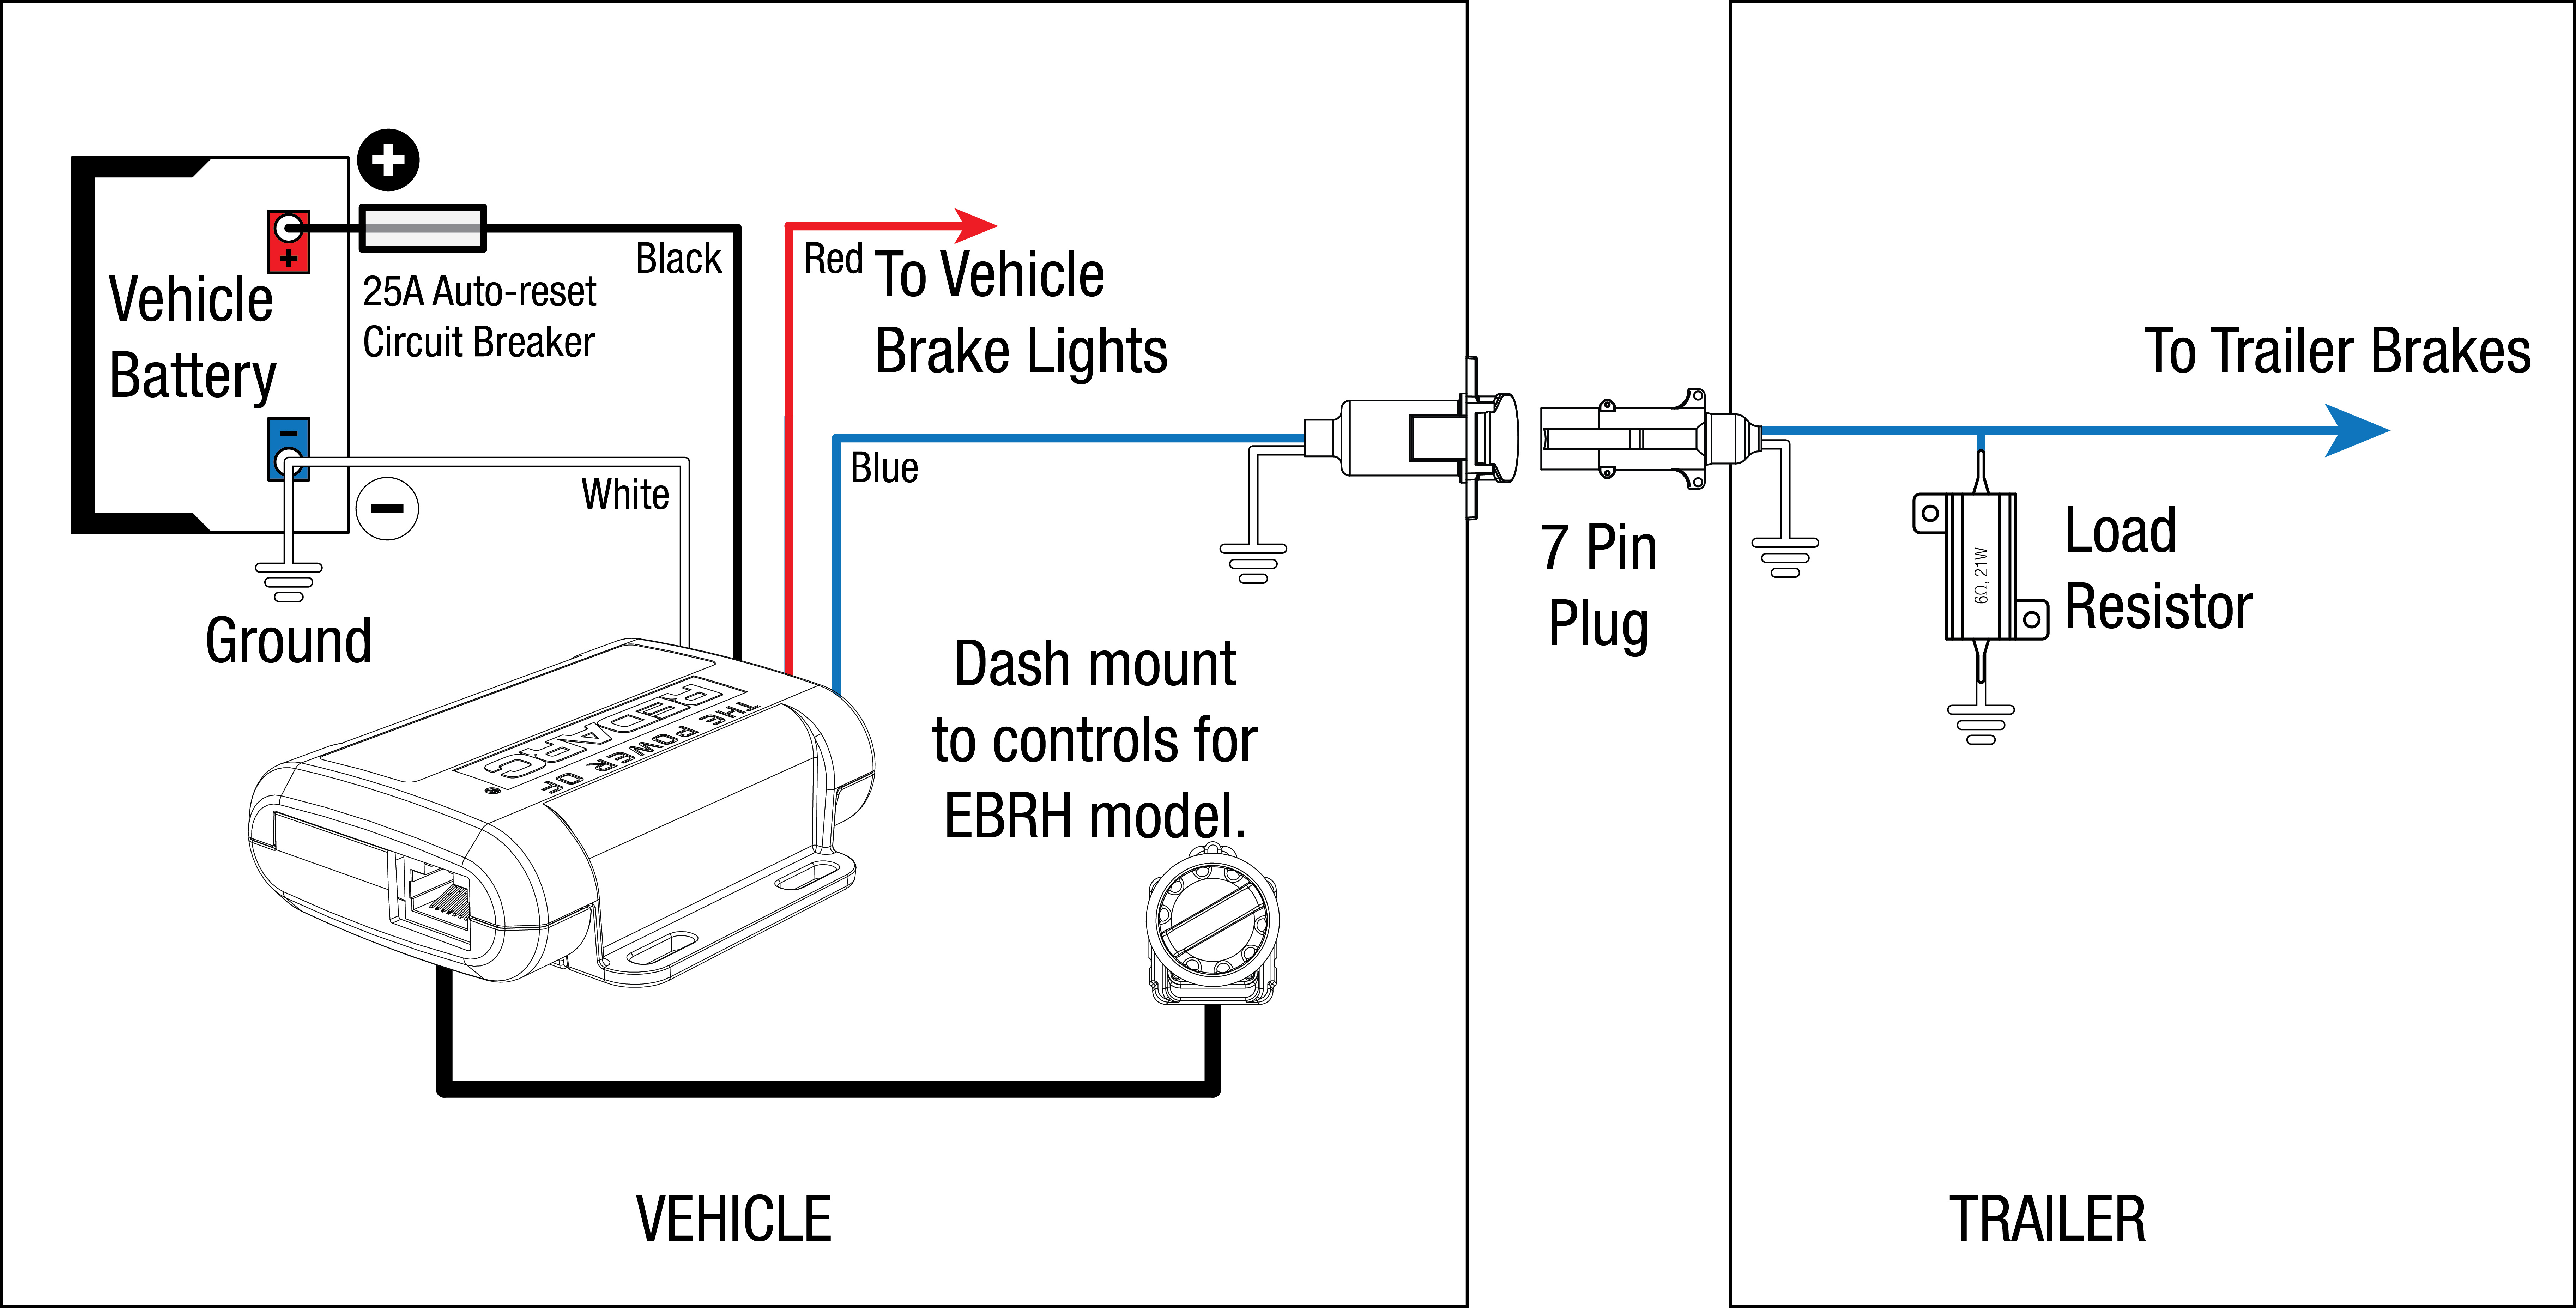 Tow-Pro Electric/hydraulic Braking Systems | Redarc Electronics - Trailer Breakaway Box Wiring Diagram